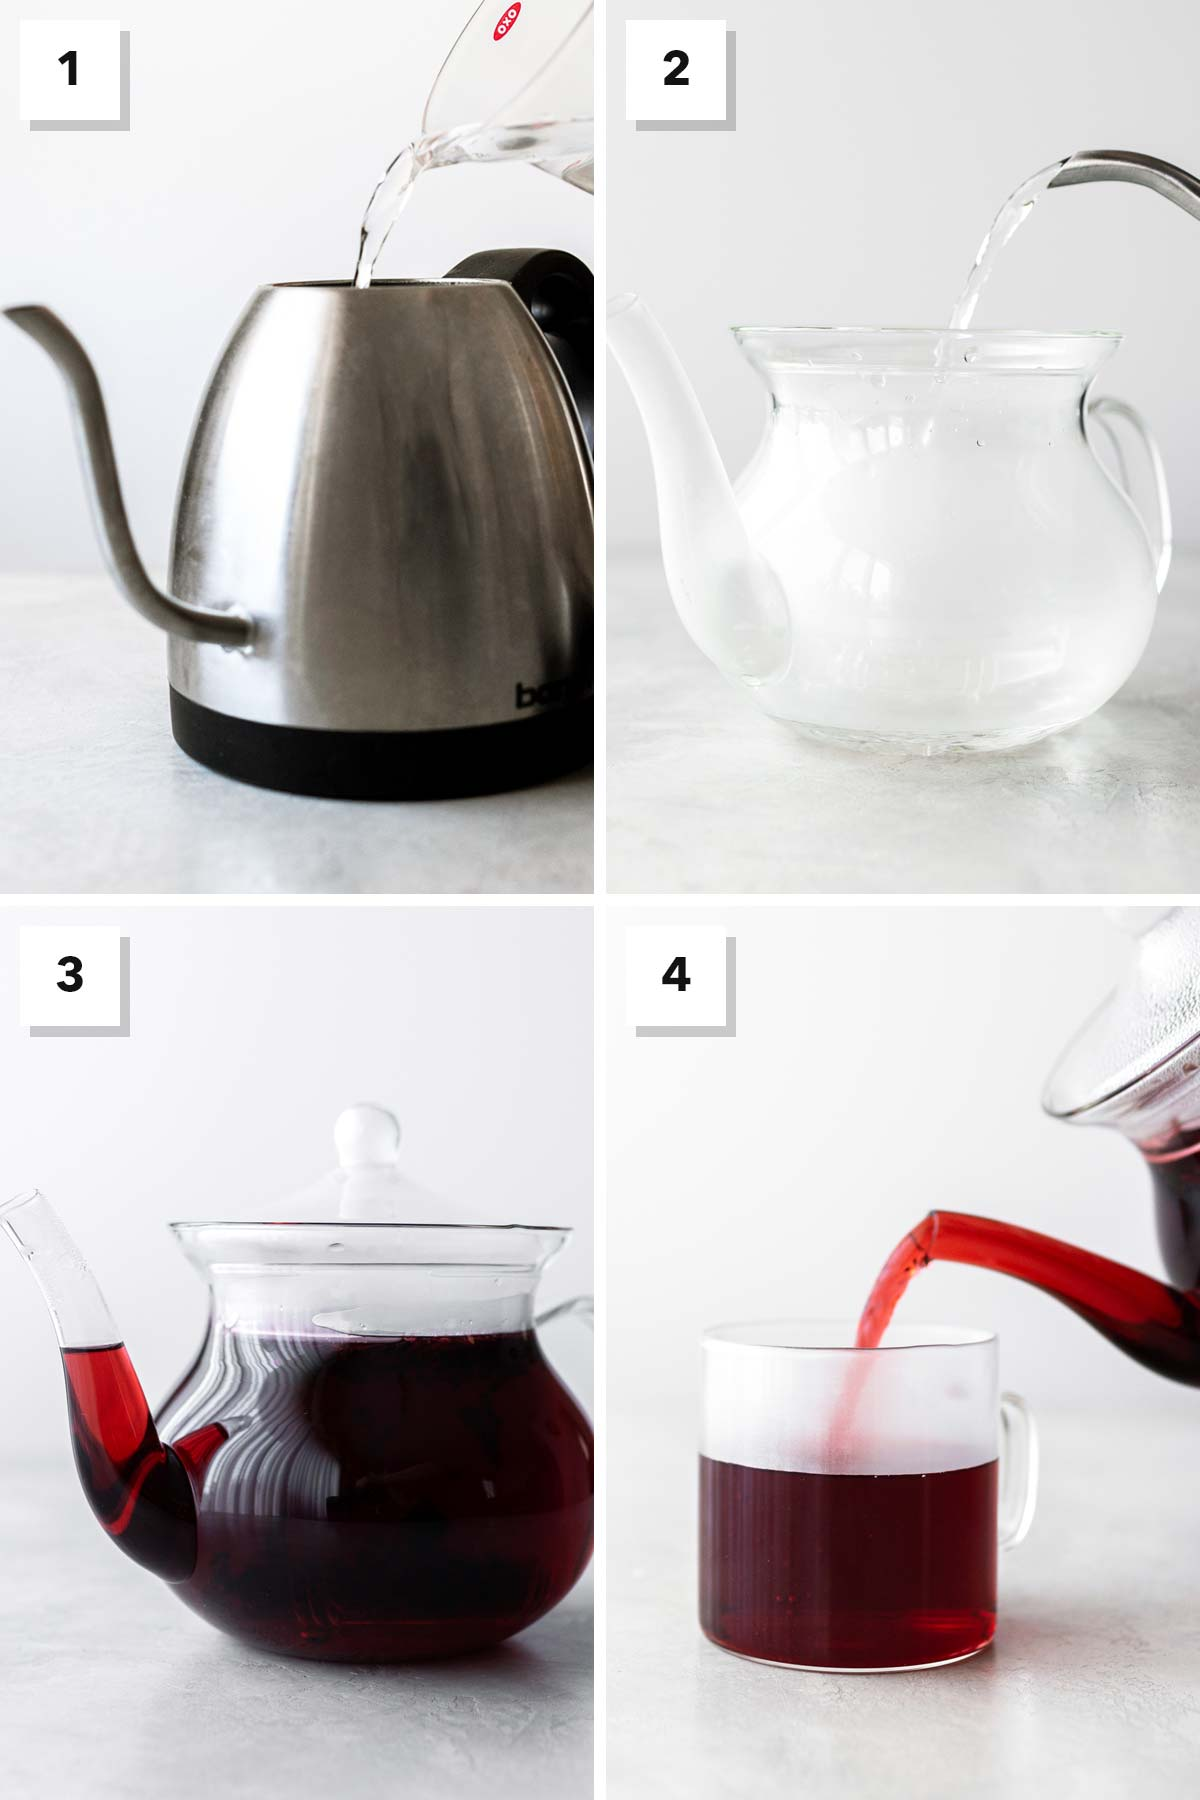 Four photo collage showing steps to make hibiscus tea.